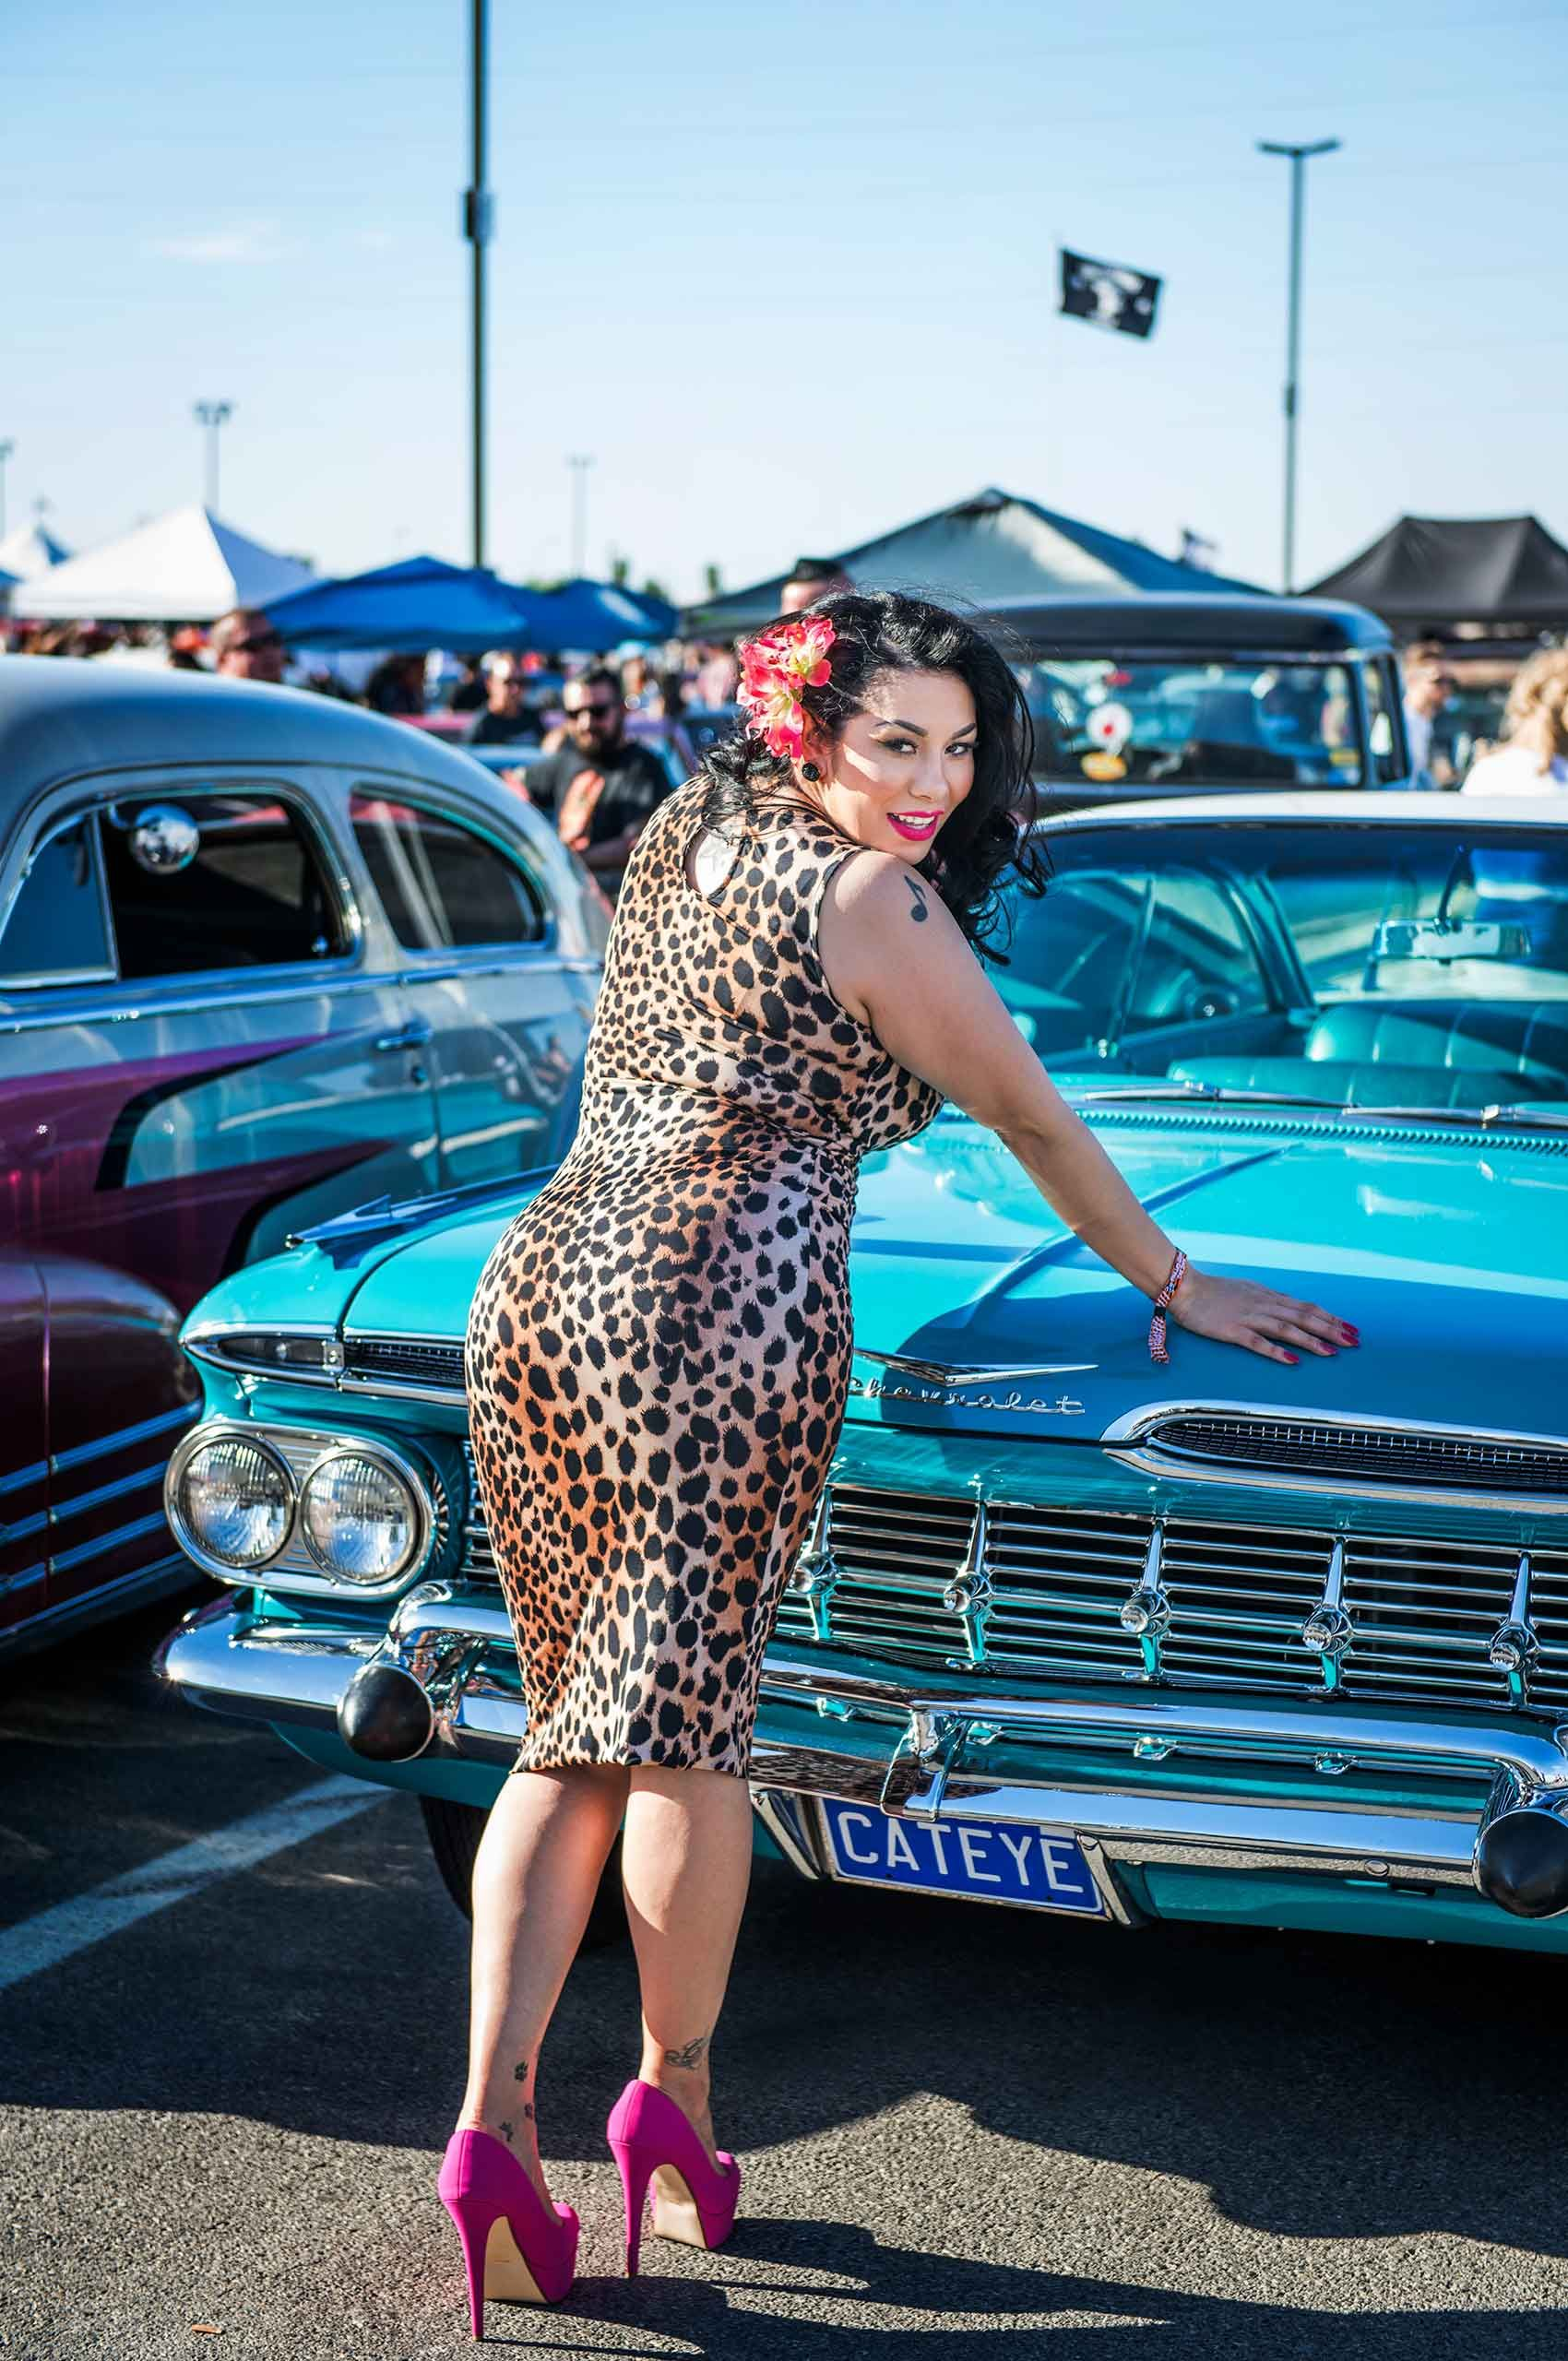 woman-in-leaoparddress-vivalasvegas-rockabillyweekend-lasvegas-by-henrikolundphotography.jpg